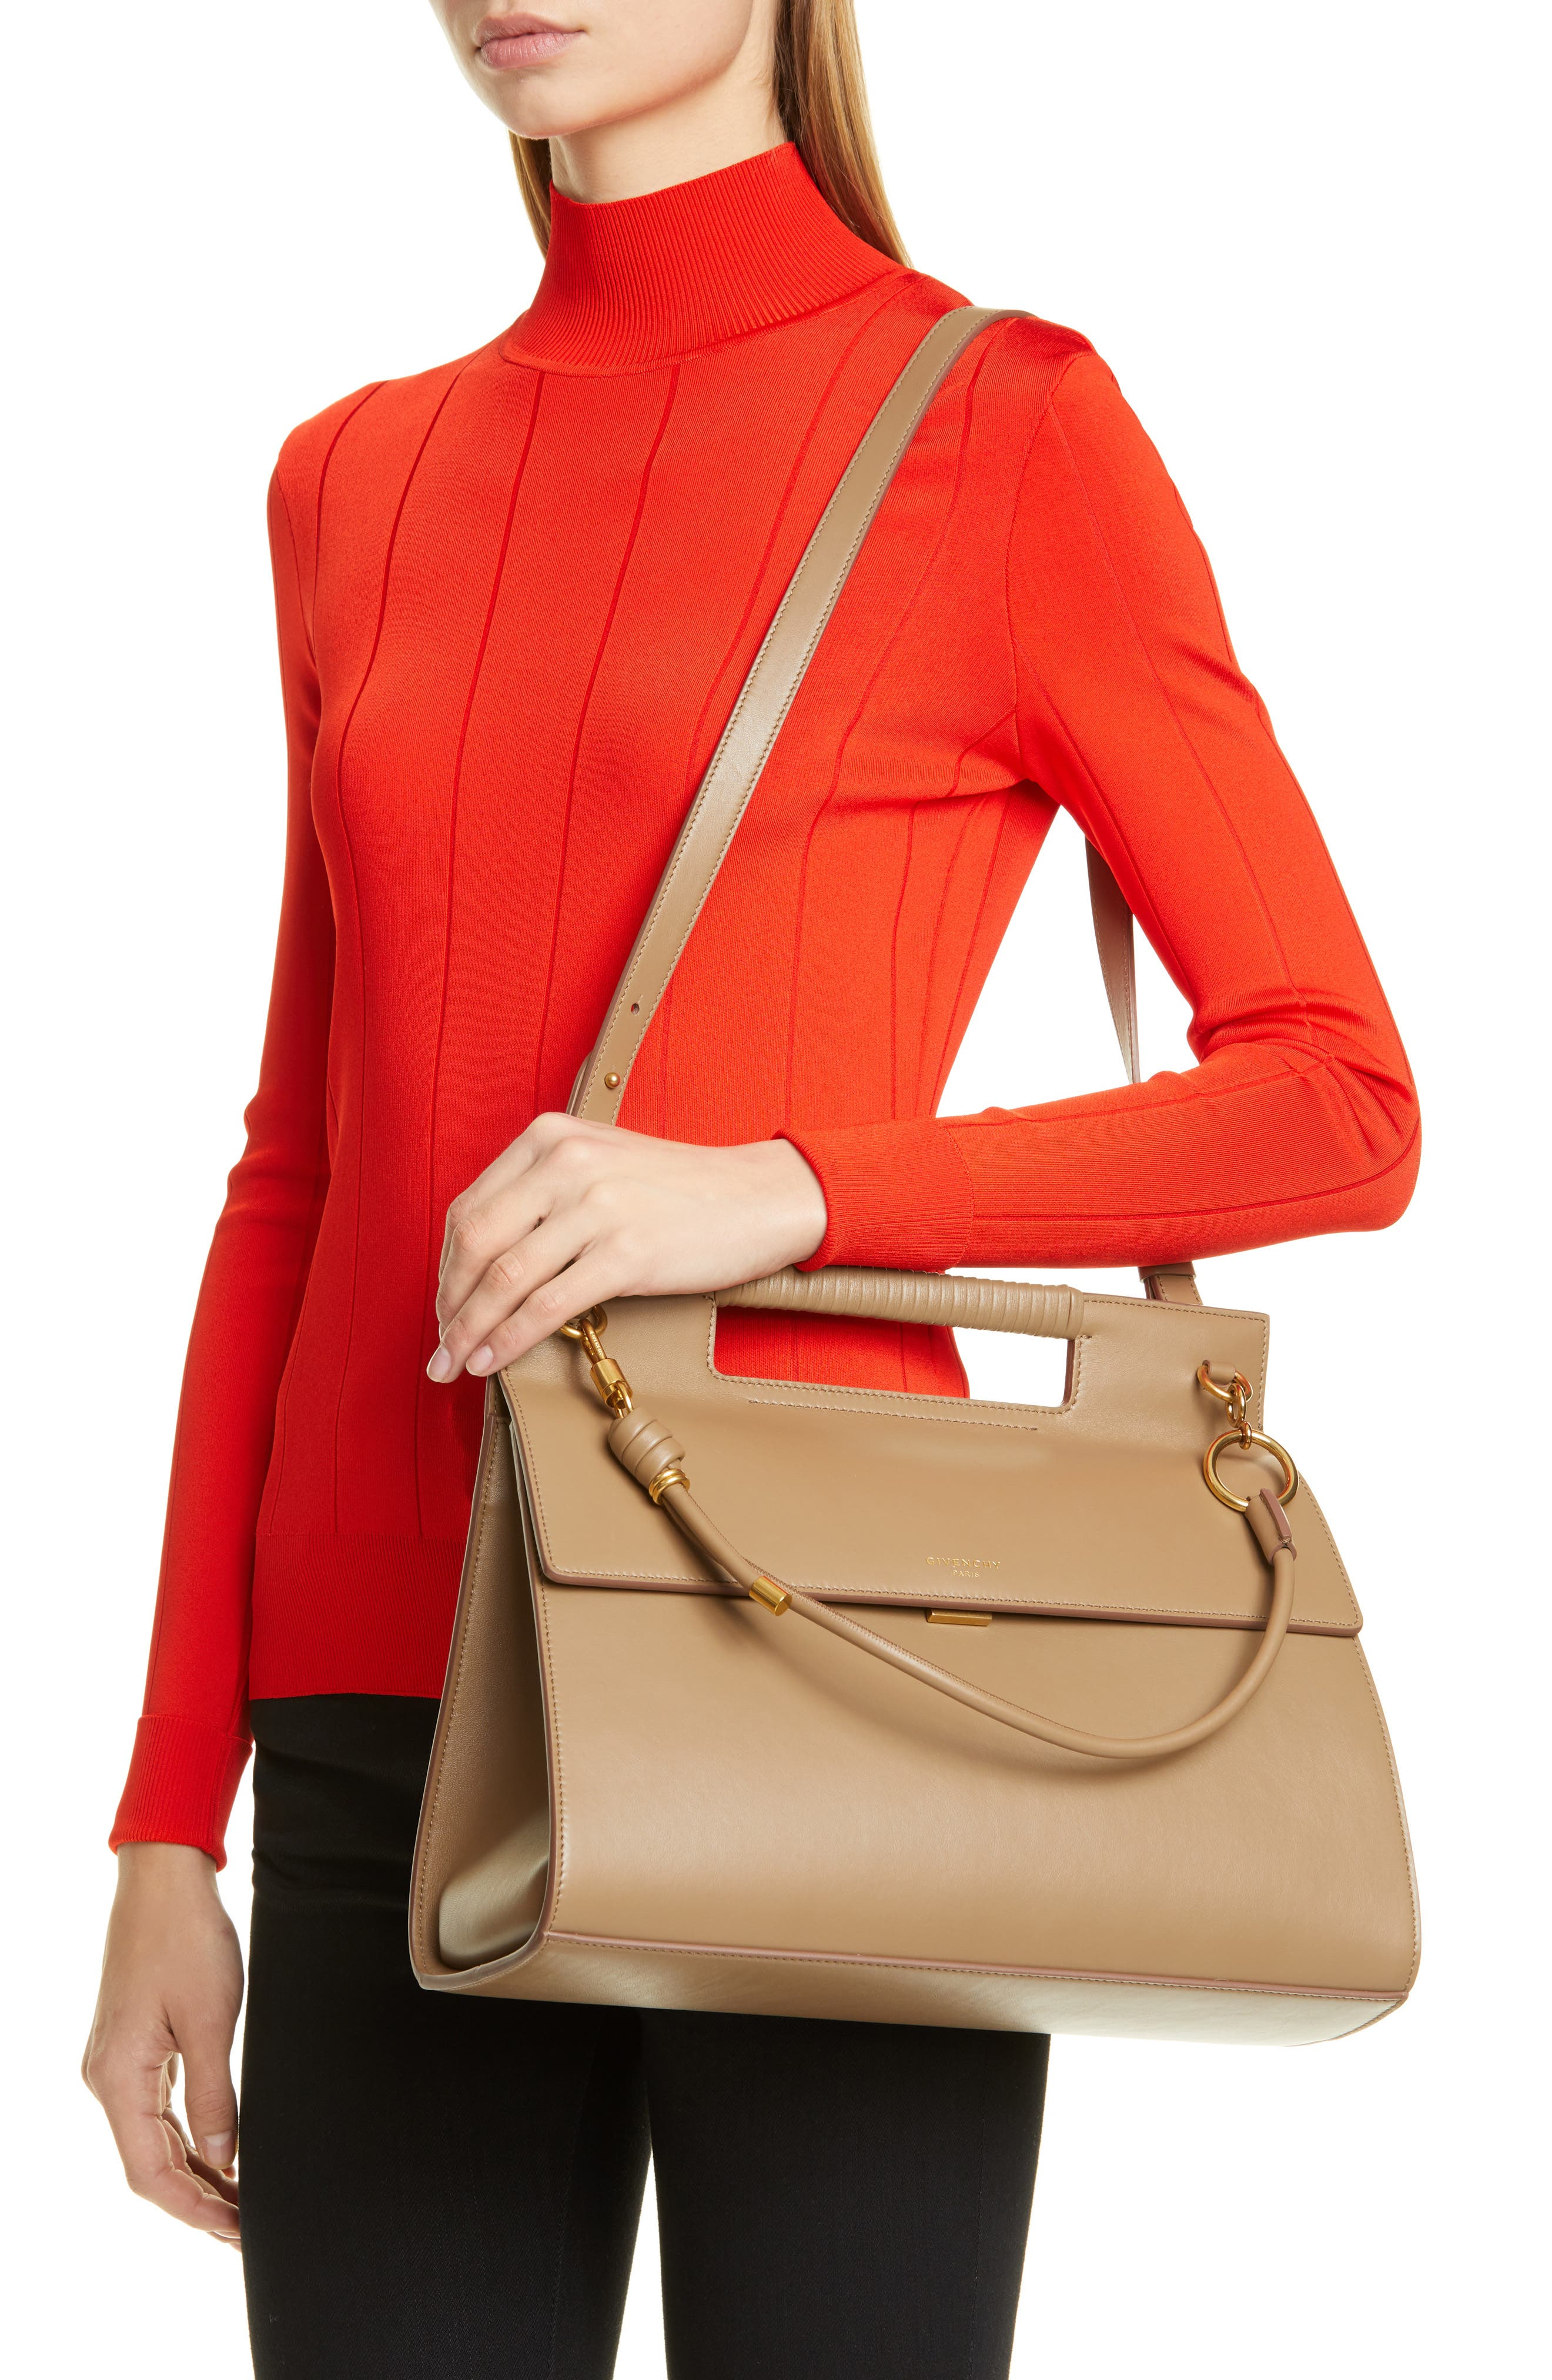 GIVENCHY, Whip Large Leather Satchel, Alternate thumbnail 2, color, TAUPE